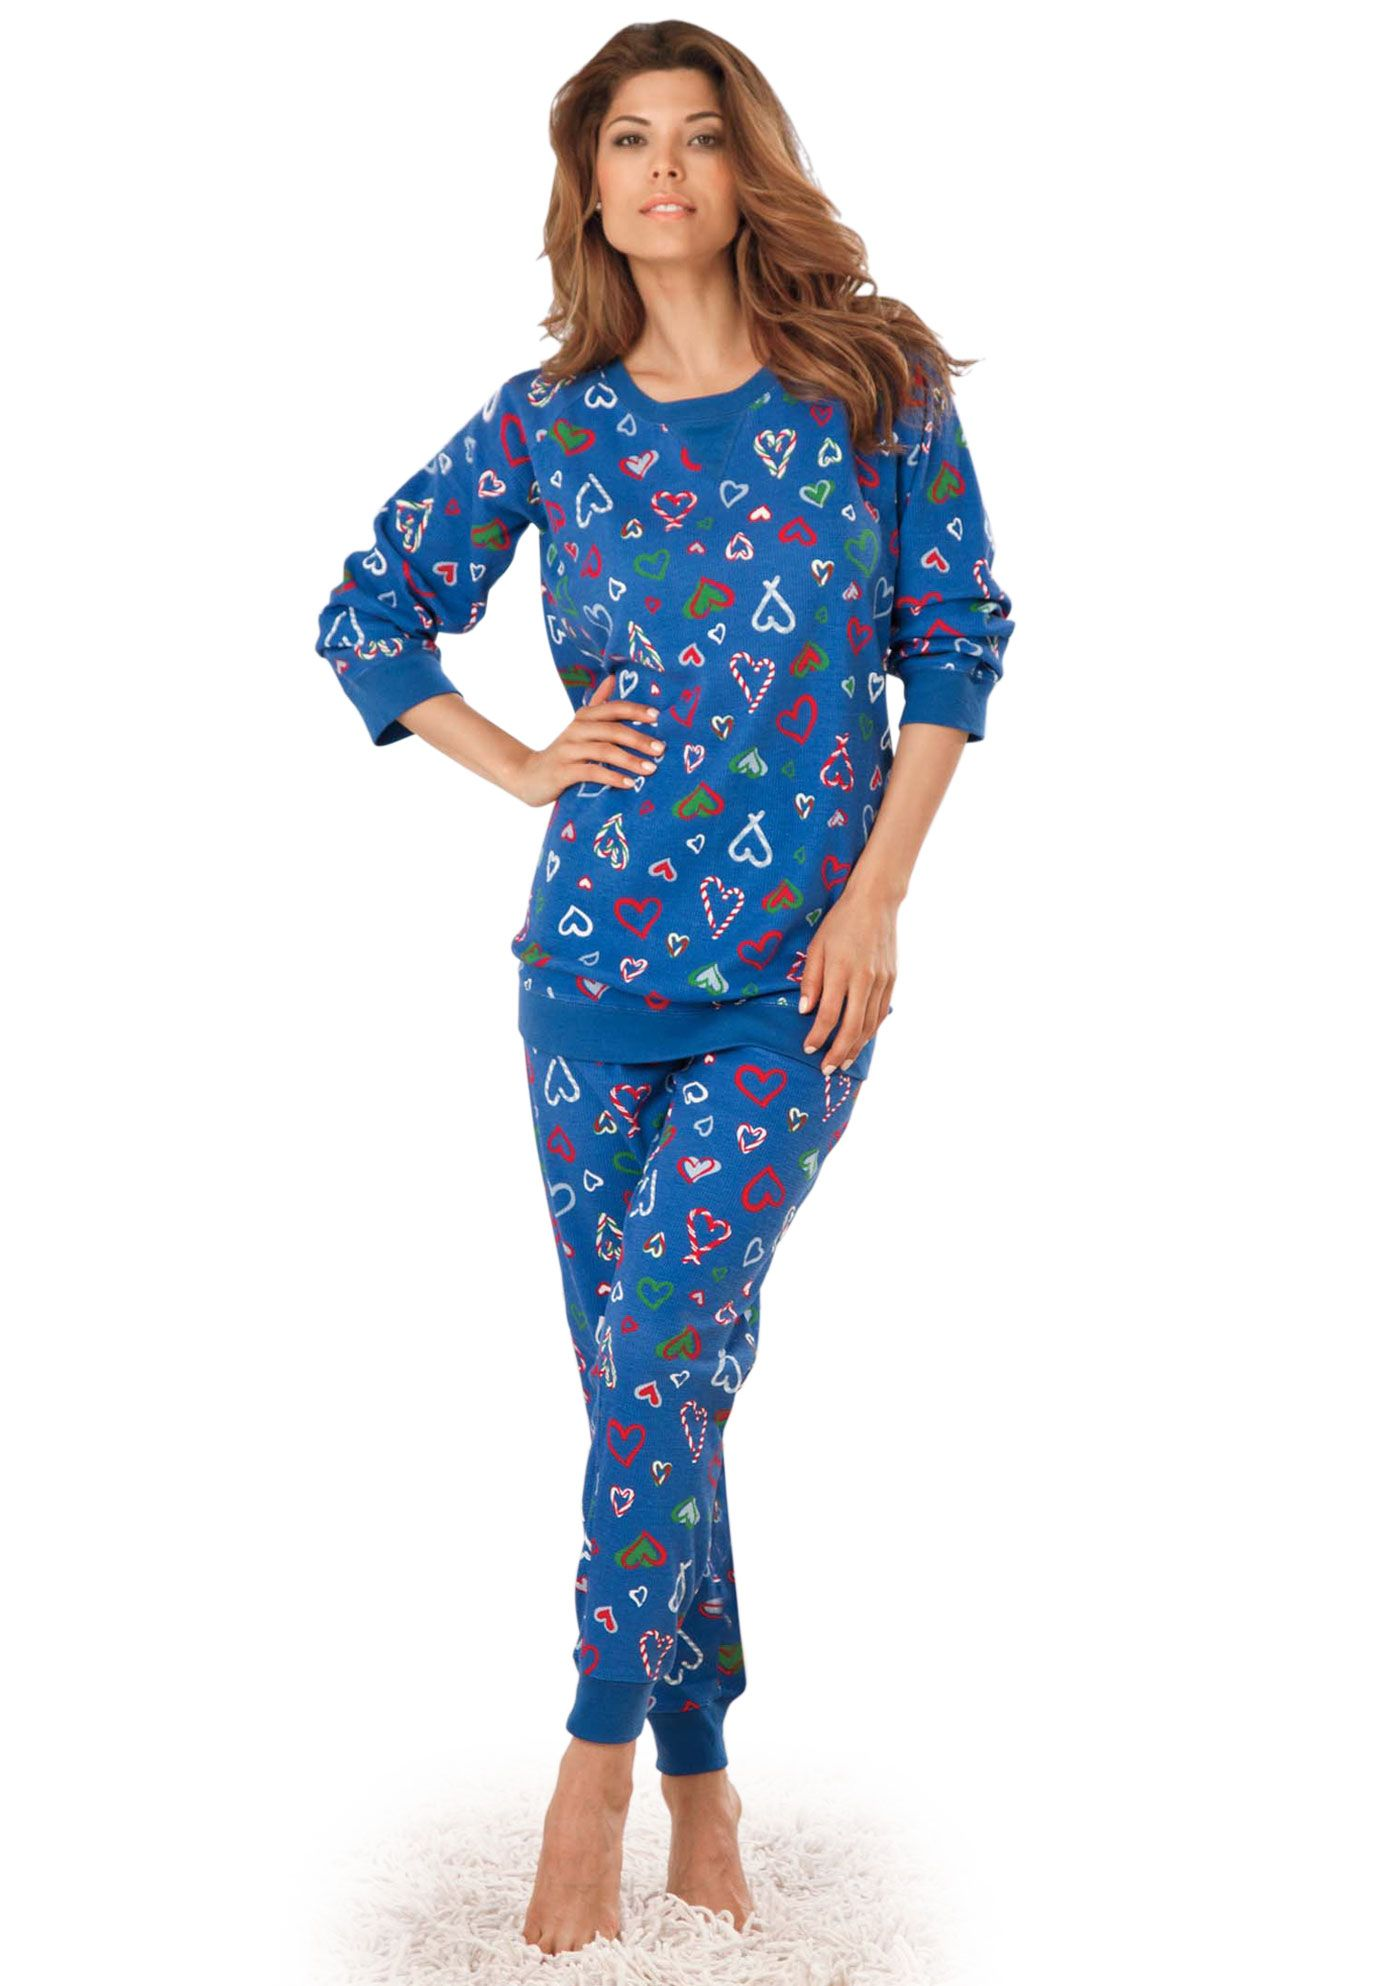 Pajama Sleep Set In Thermal Knit By Dreams Co Plus Size Just Reduced Woman Within Clothes Loungewear Outfits Plus Size Sleepwear